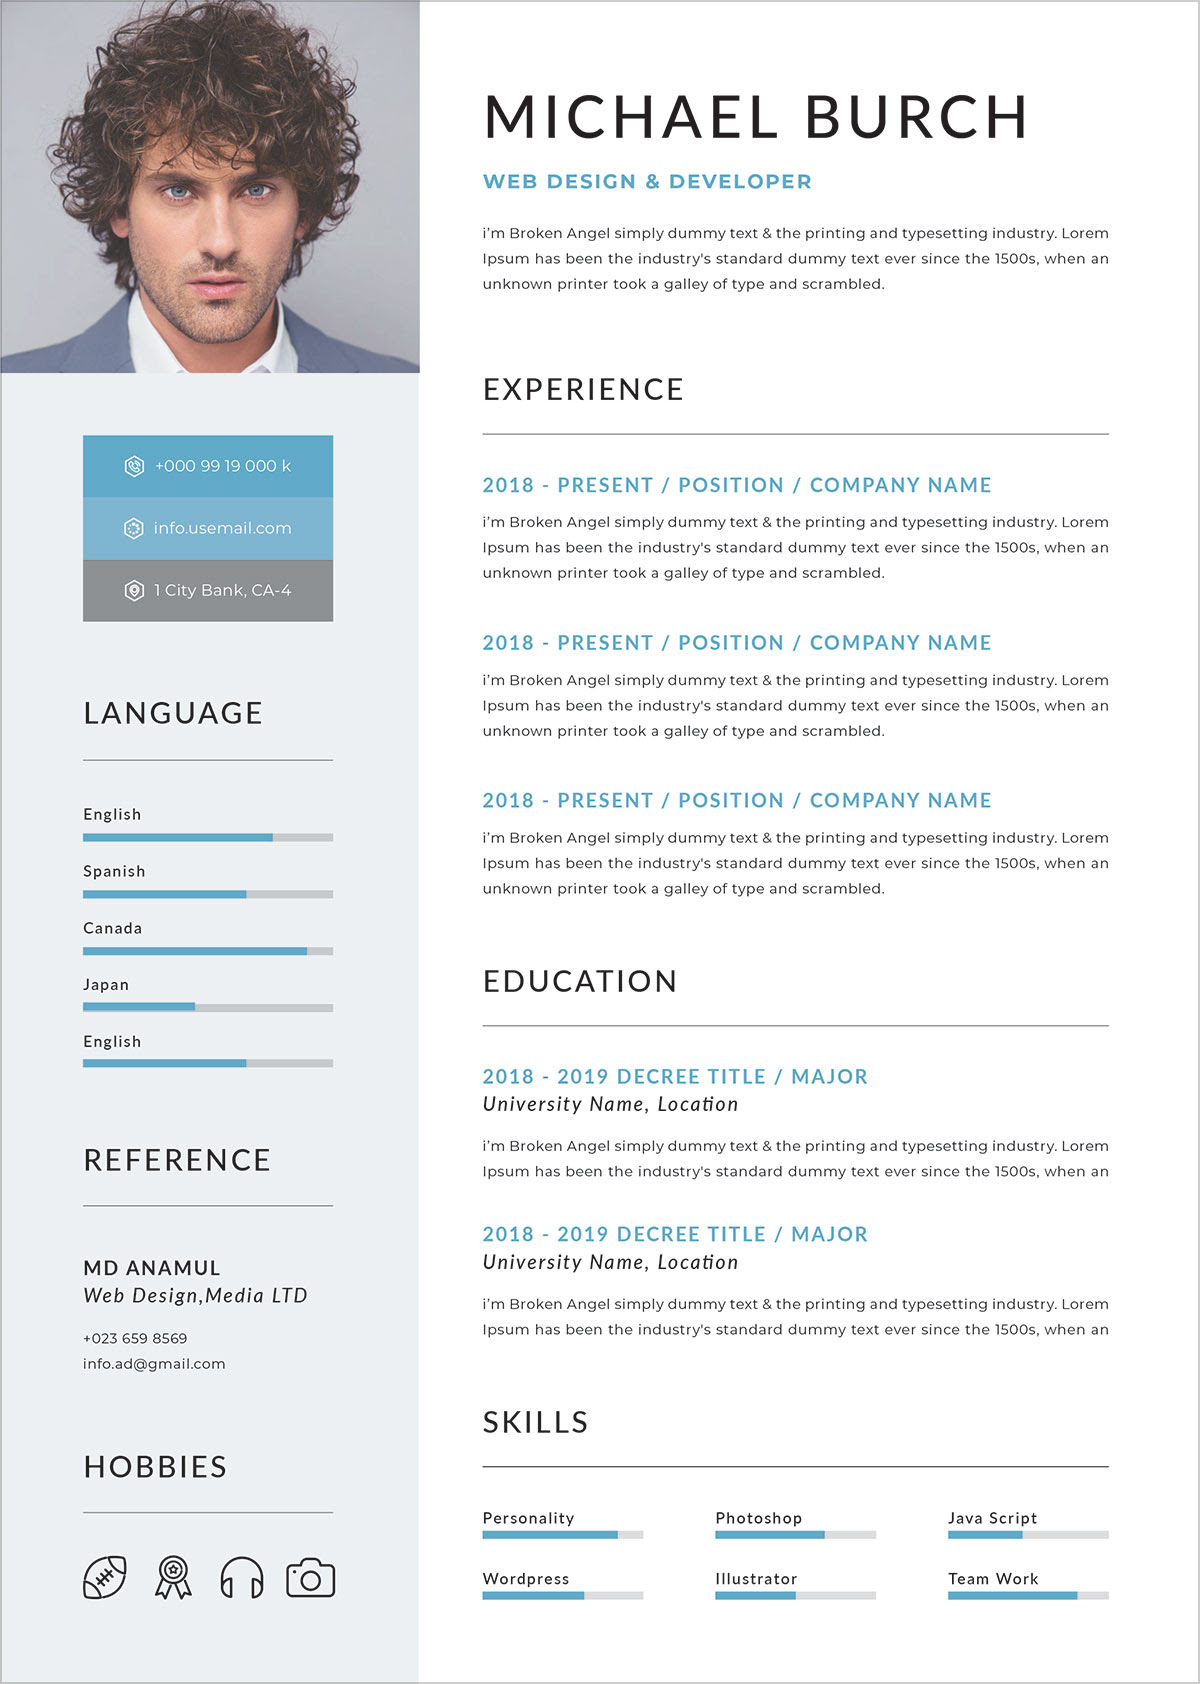 Free Professional Resume Template In DOC, PSD & Ai Format - Good Resume